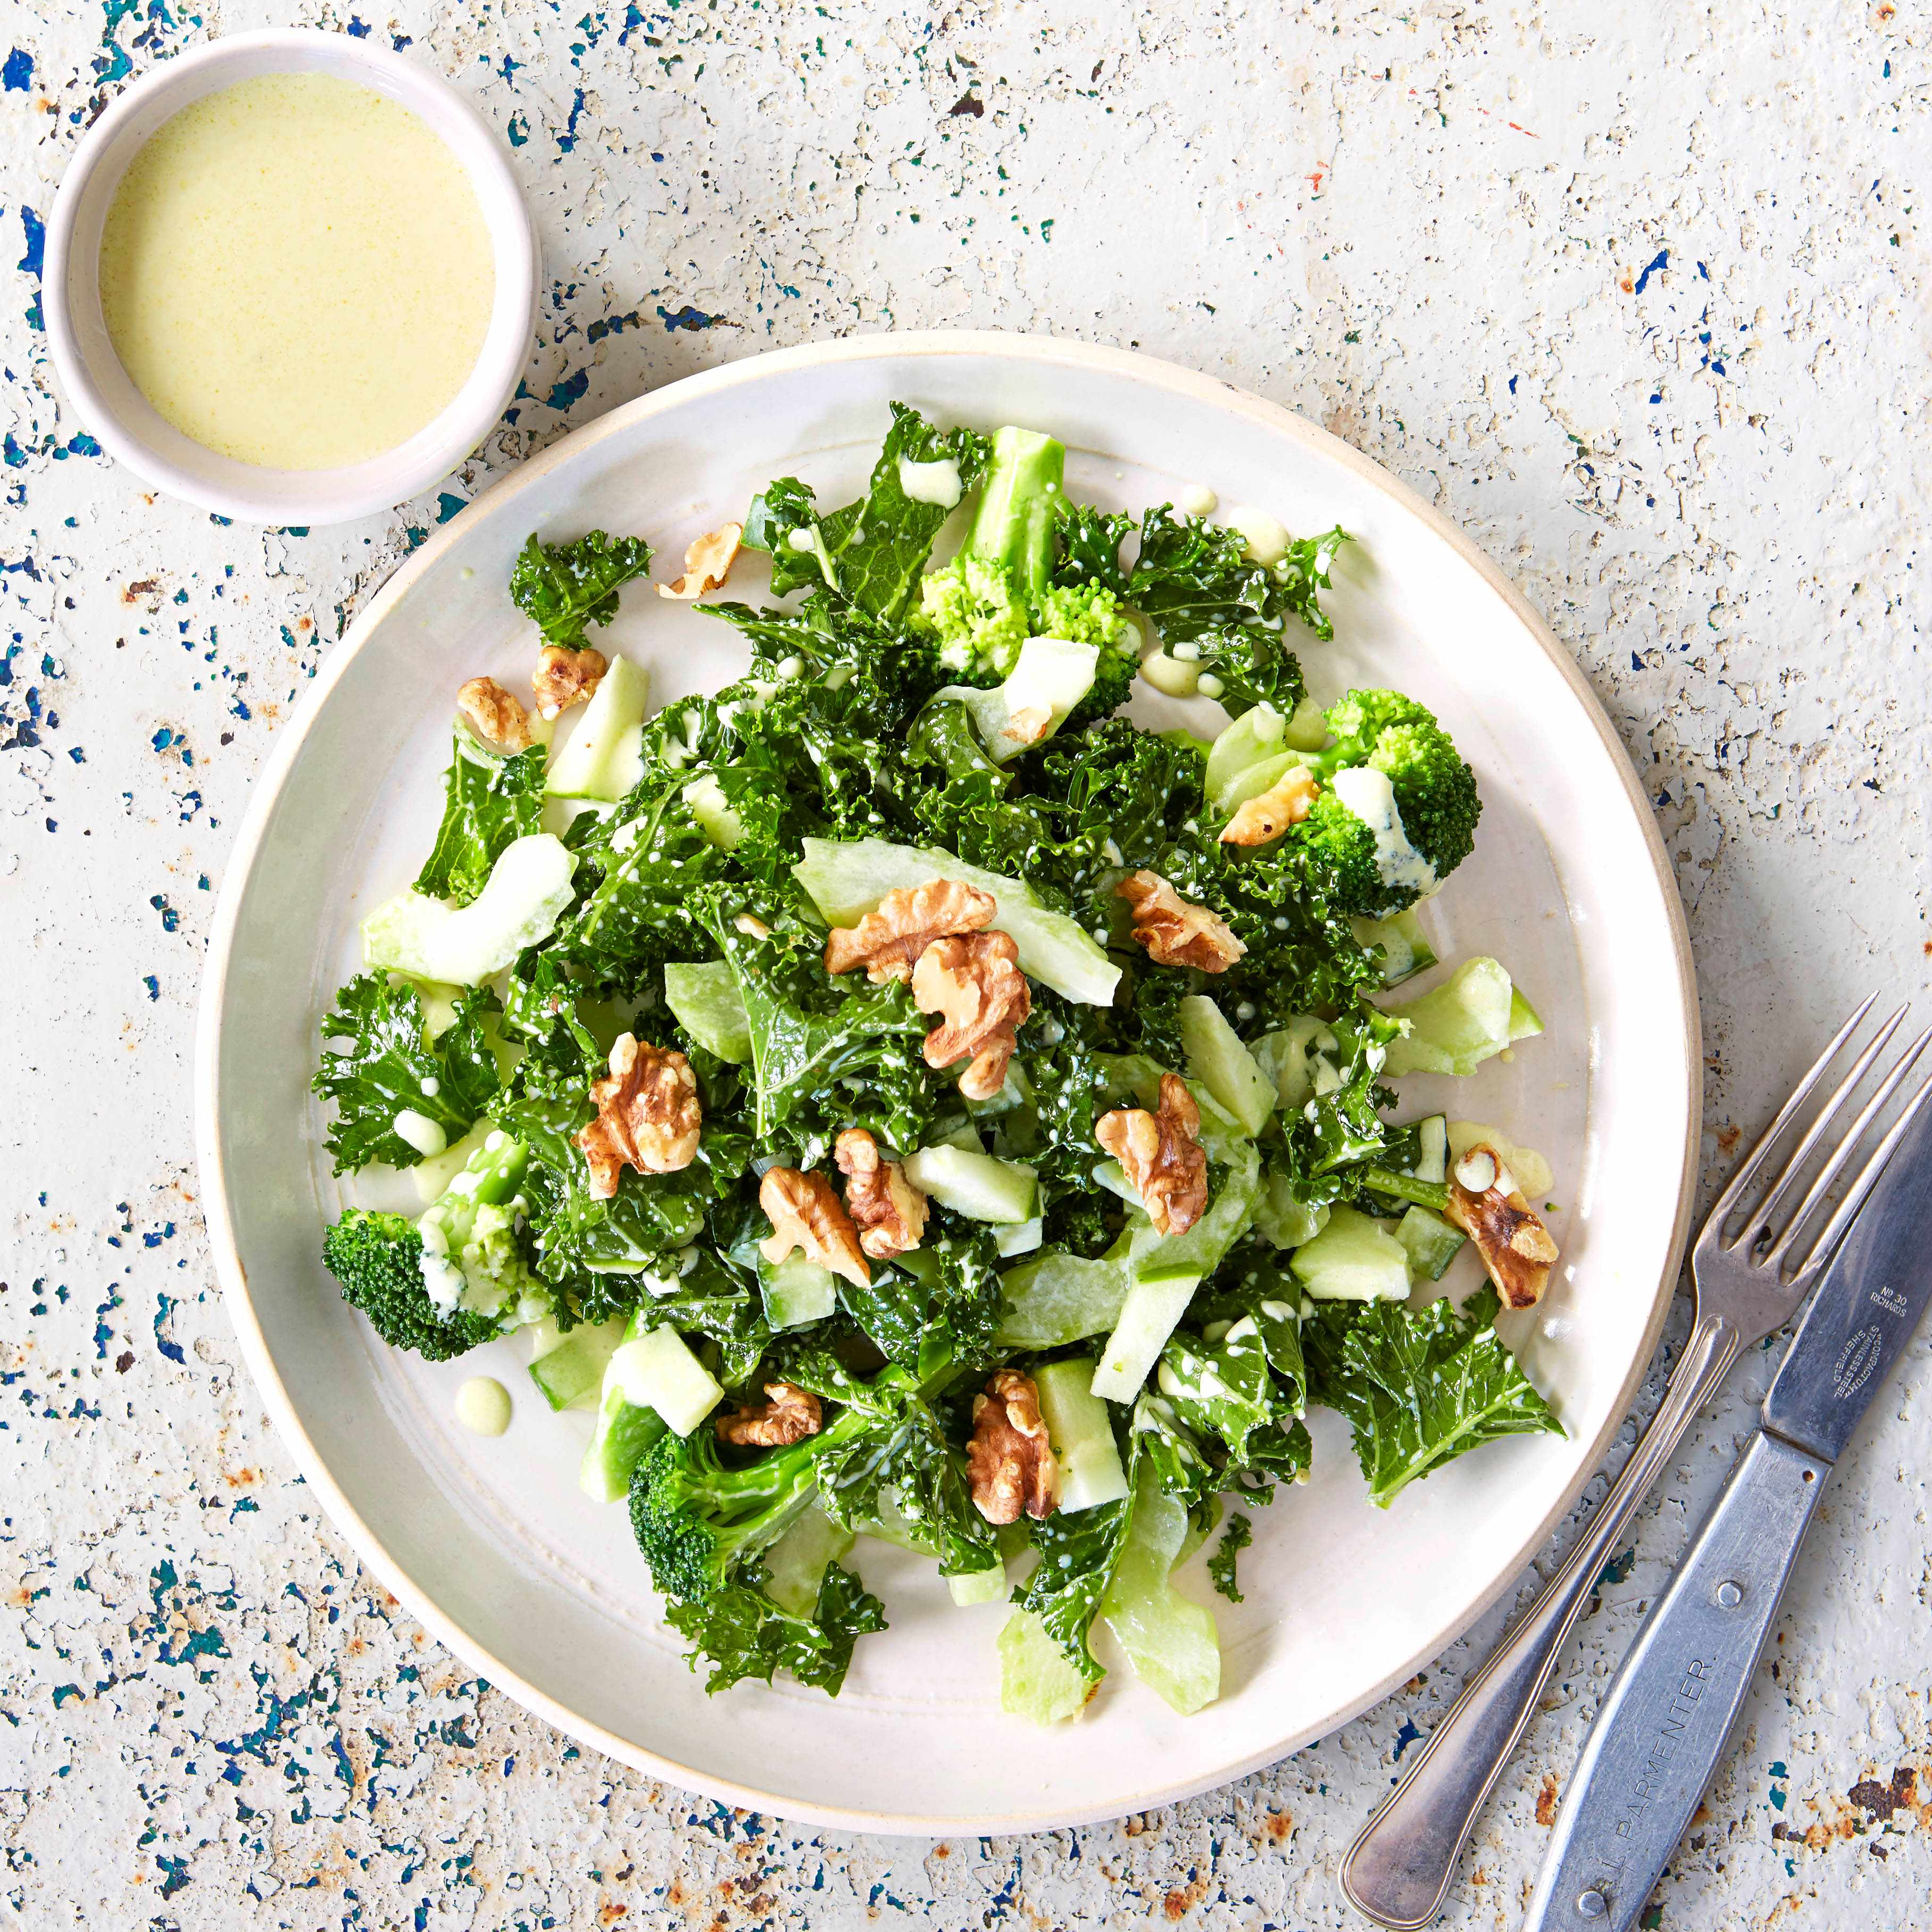 Kale and broccoli emerald salad with kefir dressing